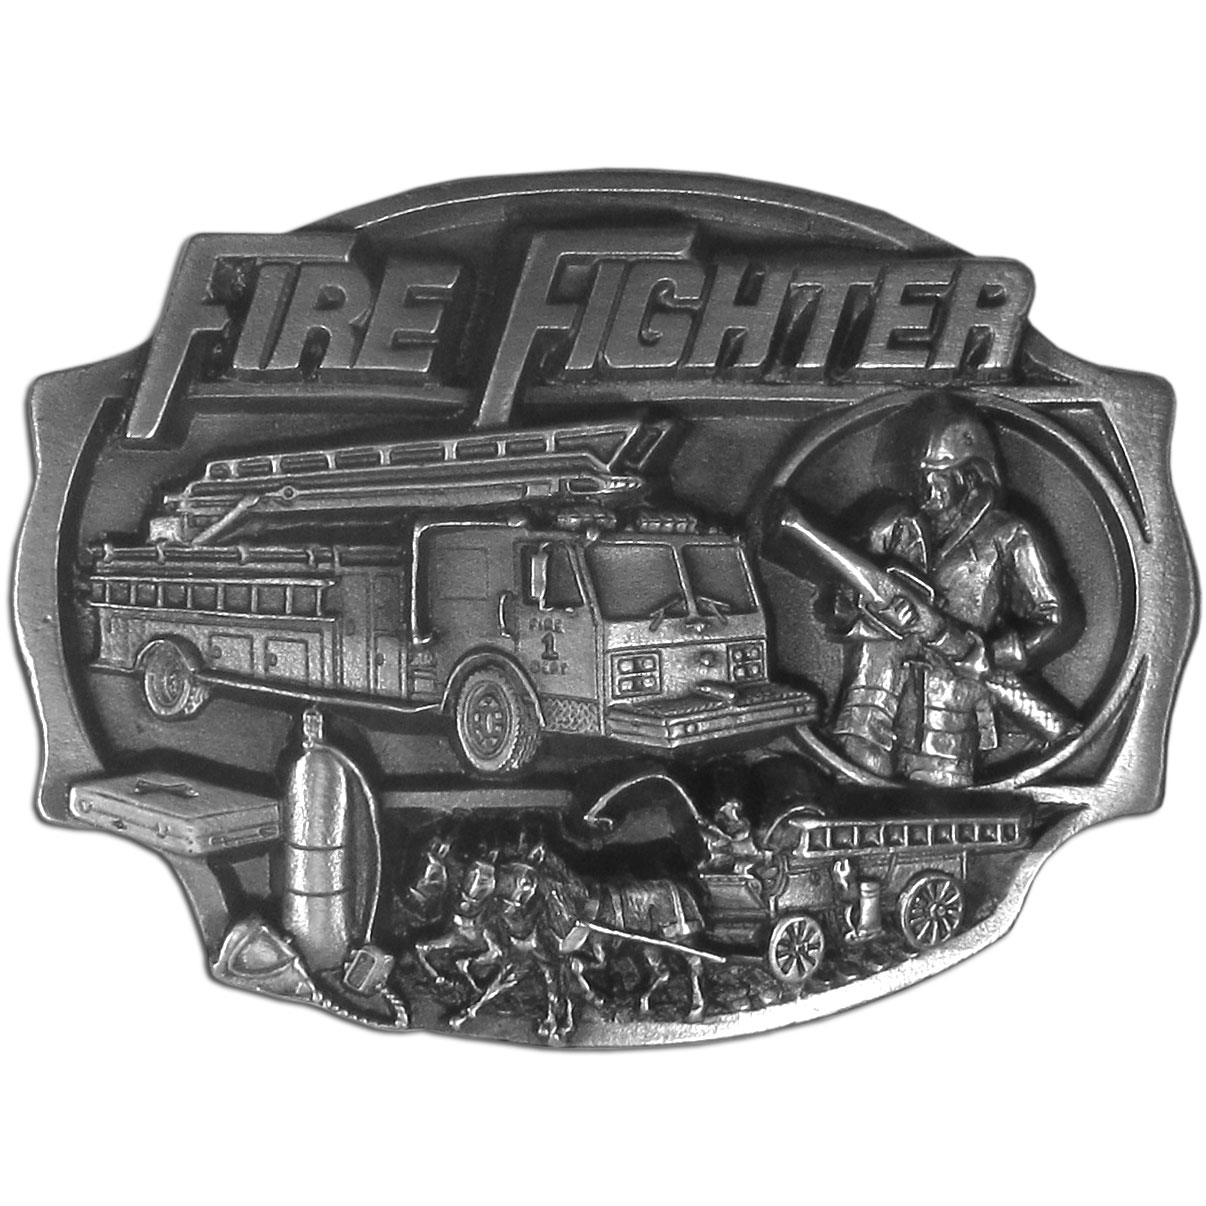 "Fire Fighter  Antiqued Belt Buckle - ""This belt buckle is perfect for the fire fighter!  """"Fire Fighter"""" is written in bold across the top.  There is a fire fighter with a fire hose in hand, a firetruck, an old fashioned, horse drawn fire wagon and an oxygen tank and medical box.  This exquisitely carved buckle is made of fully cast metal with a standard bale that fits up to 2"""" belts"""